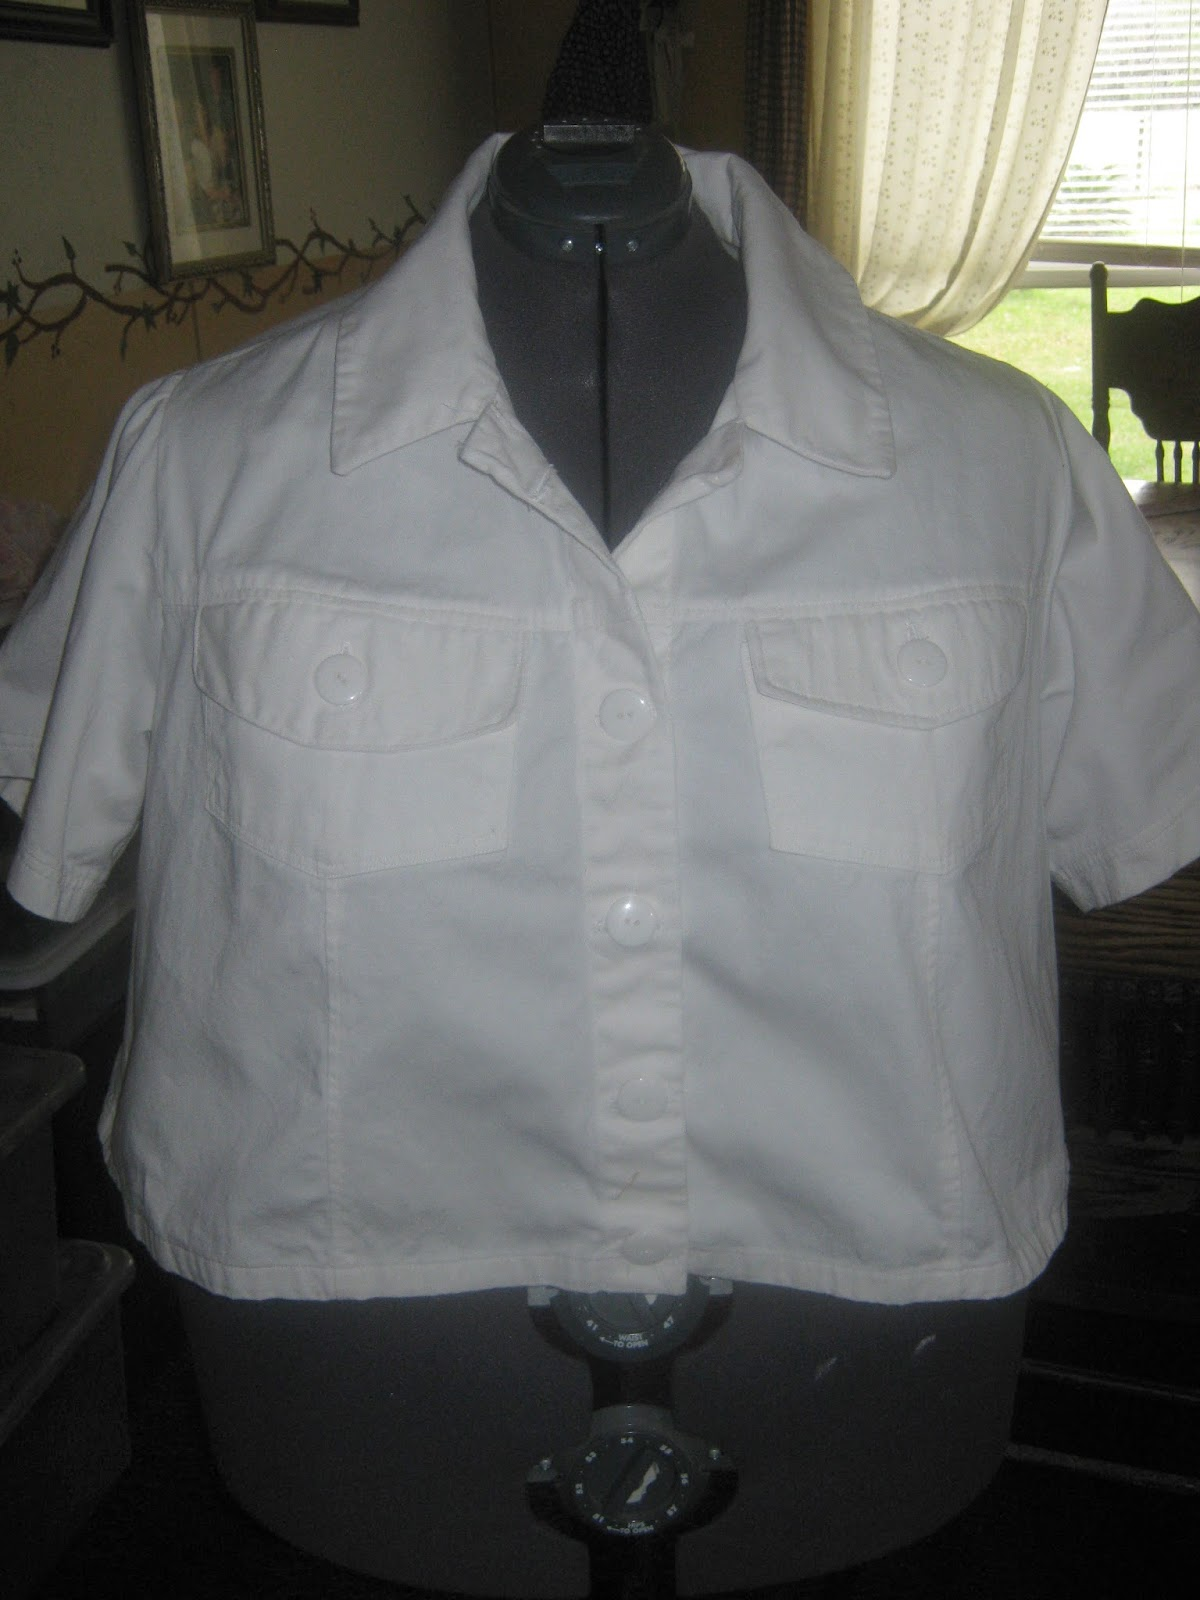 Butterick 5616 White Denim Crop Jacket www.sewplus.blogspot.com